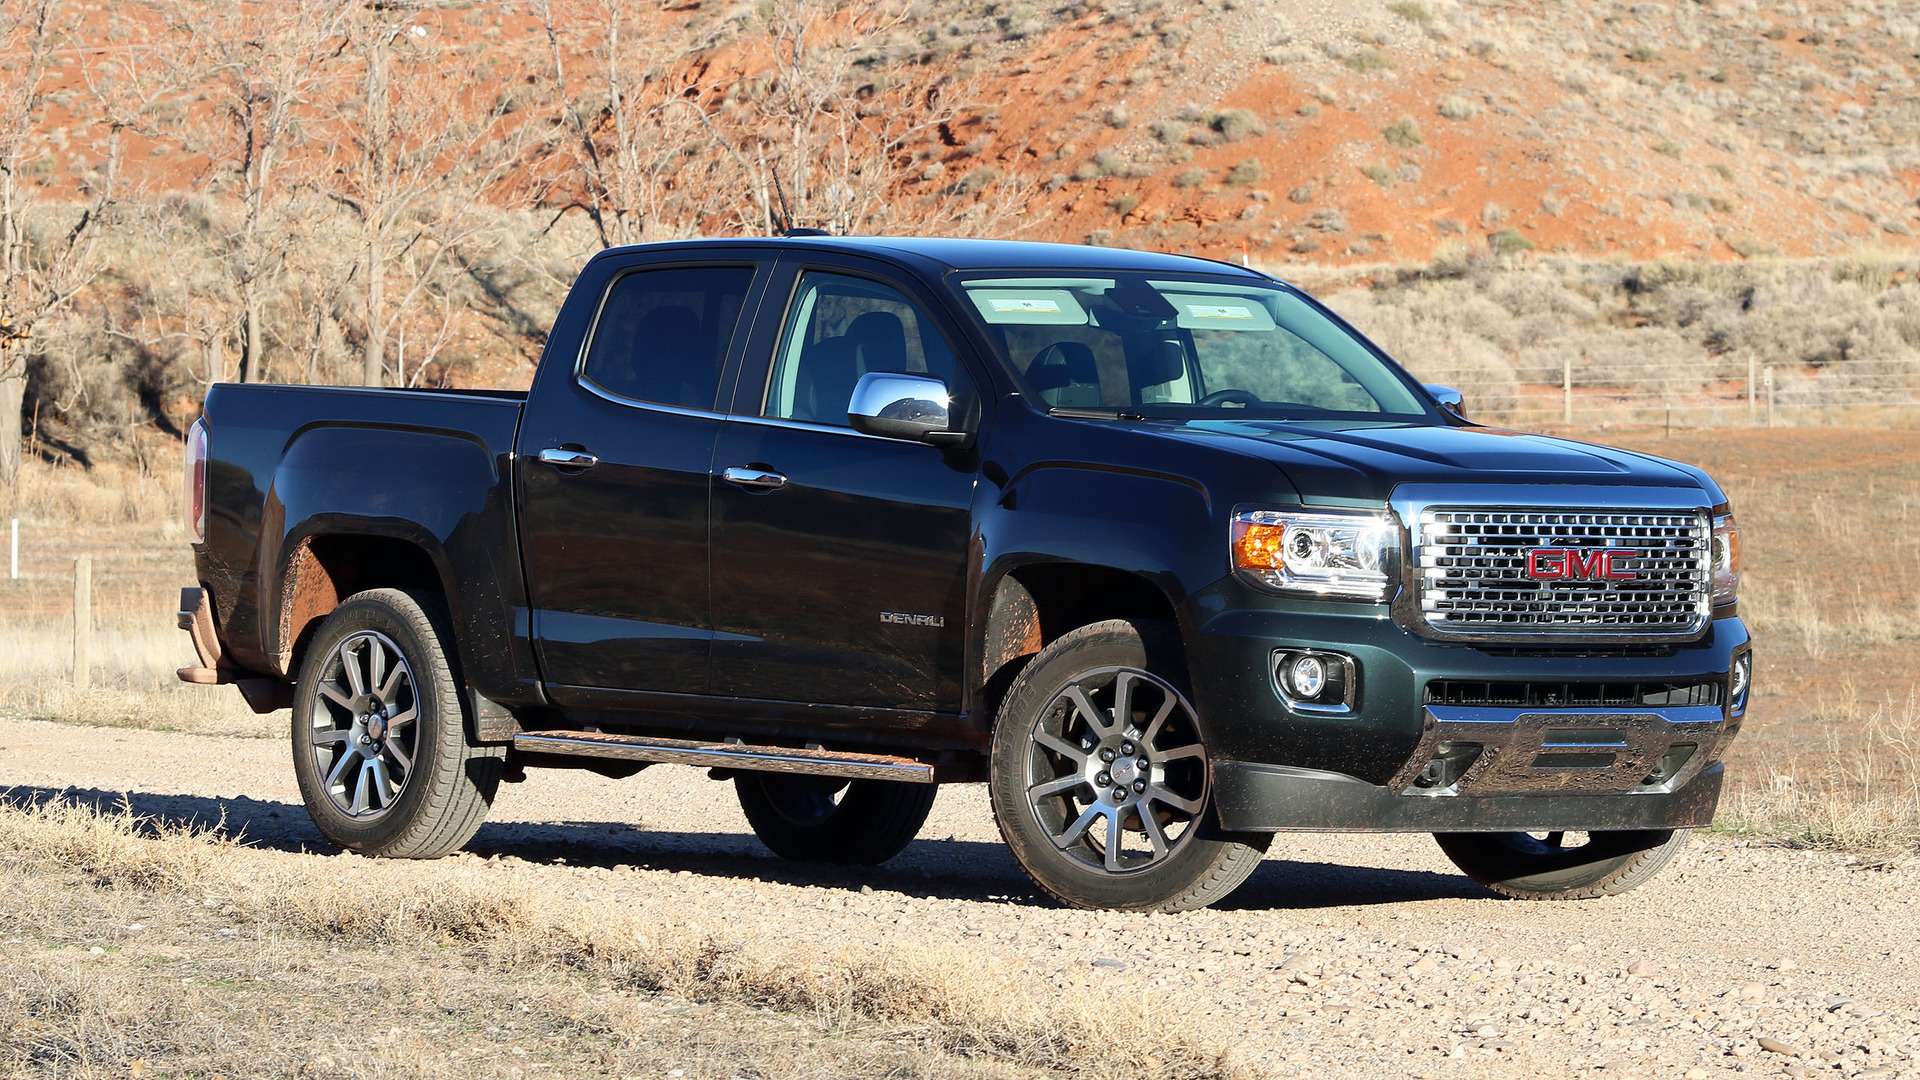 gmc canyon towing capacity 2018 2019 new car reviews by girlcodemovement. Black Bedroom Furniture Sets. Home Design Ideas